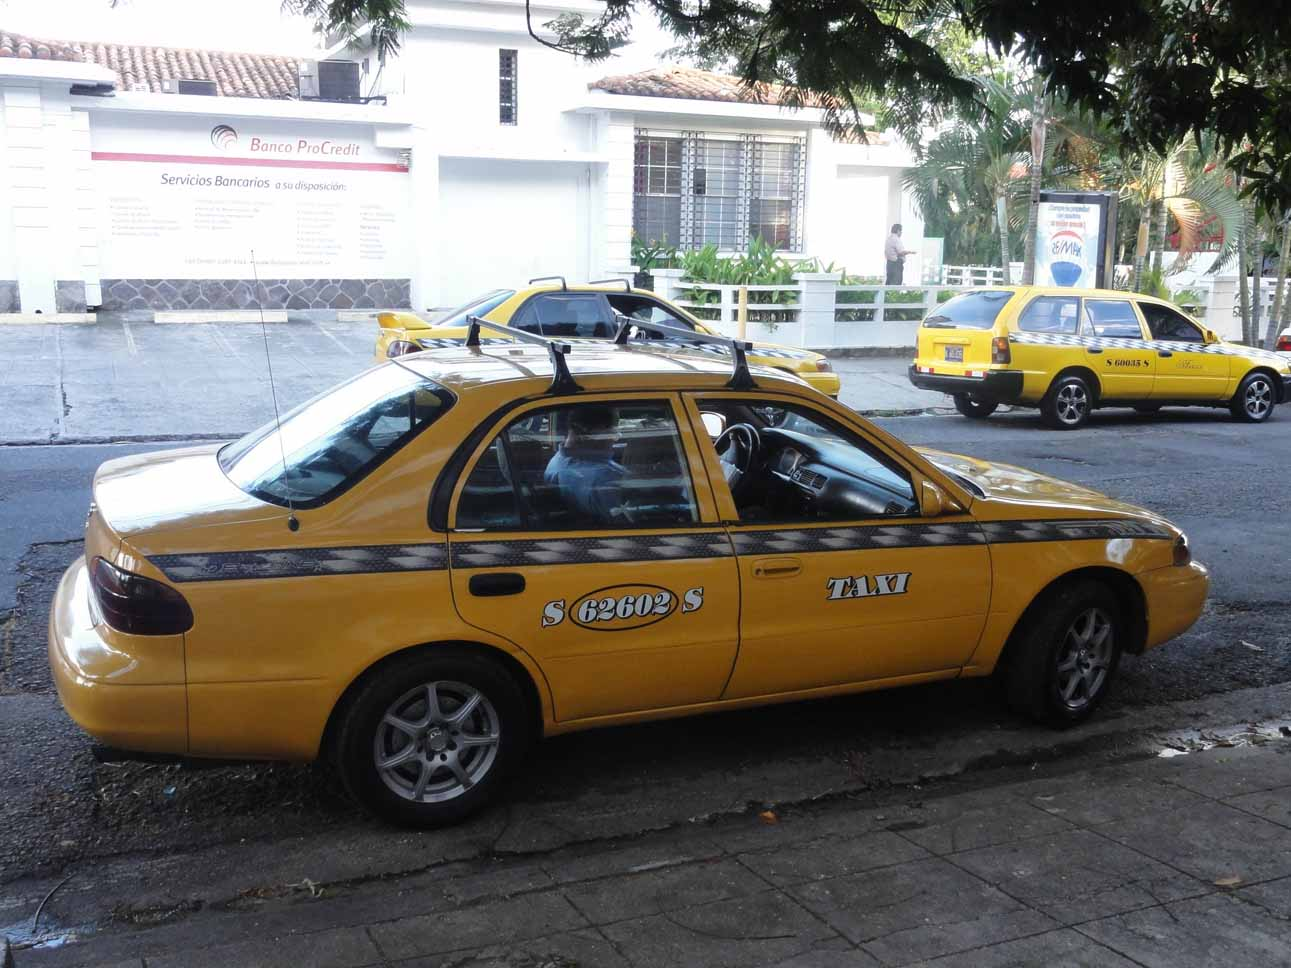 Streets and trips 2017 buy desuctipp - Order a cab ...